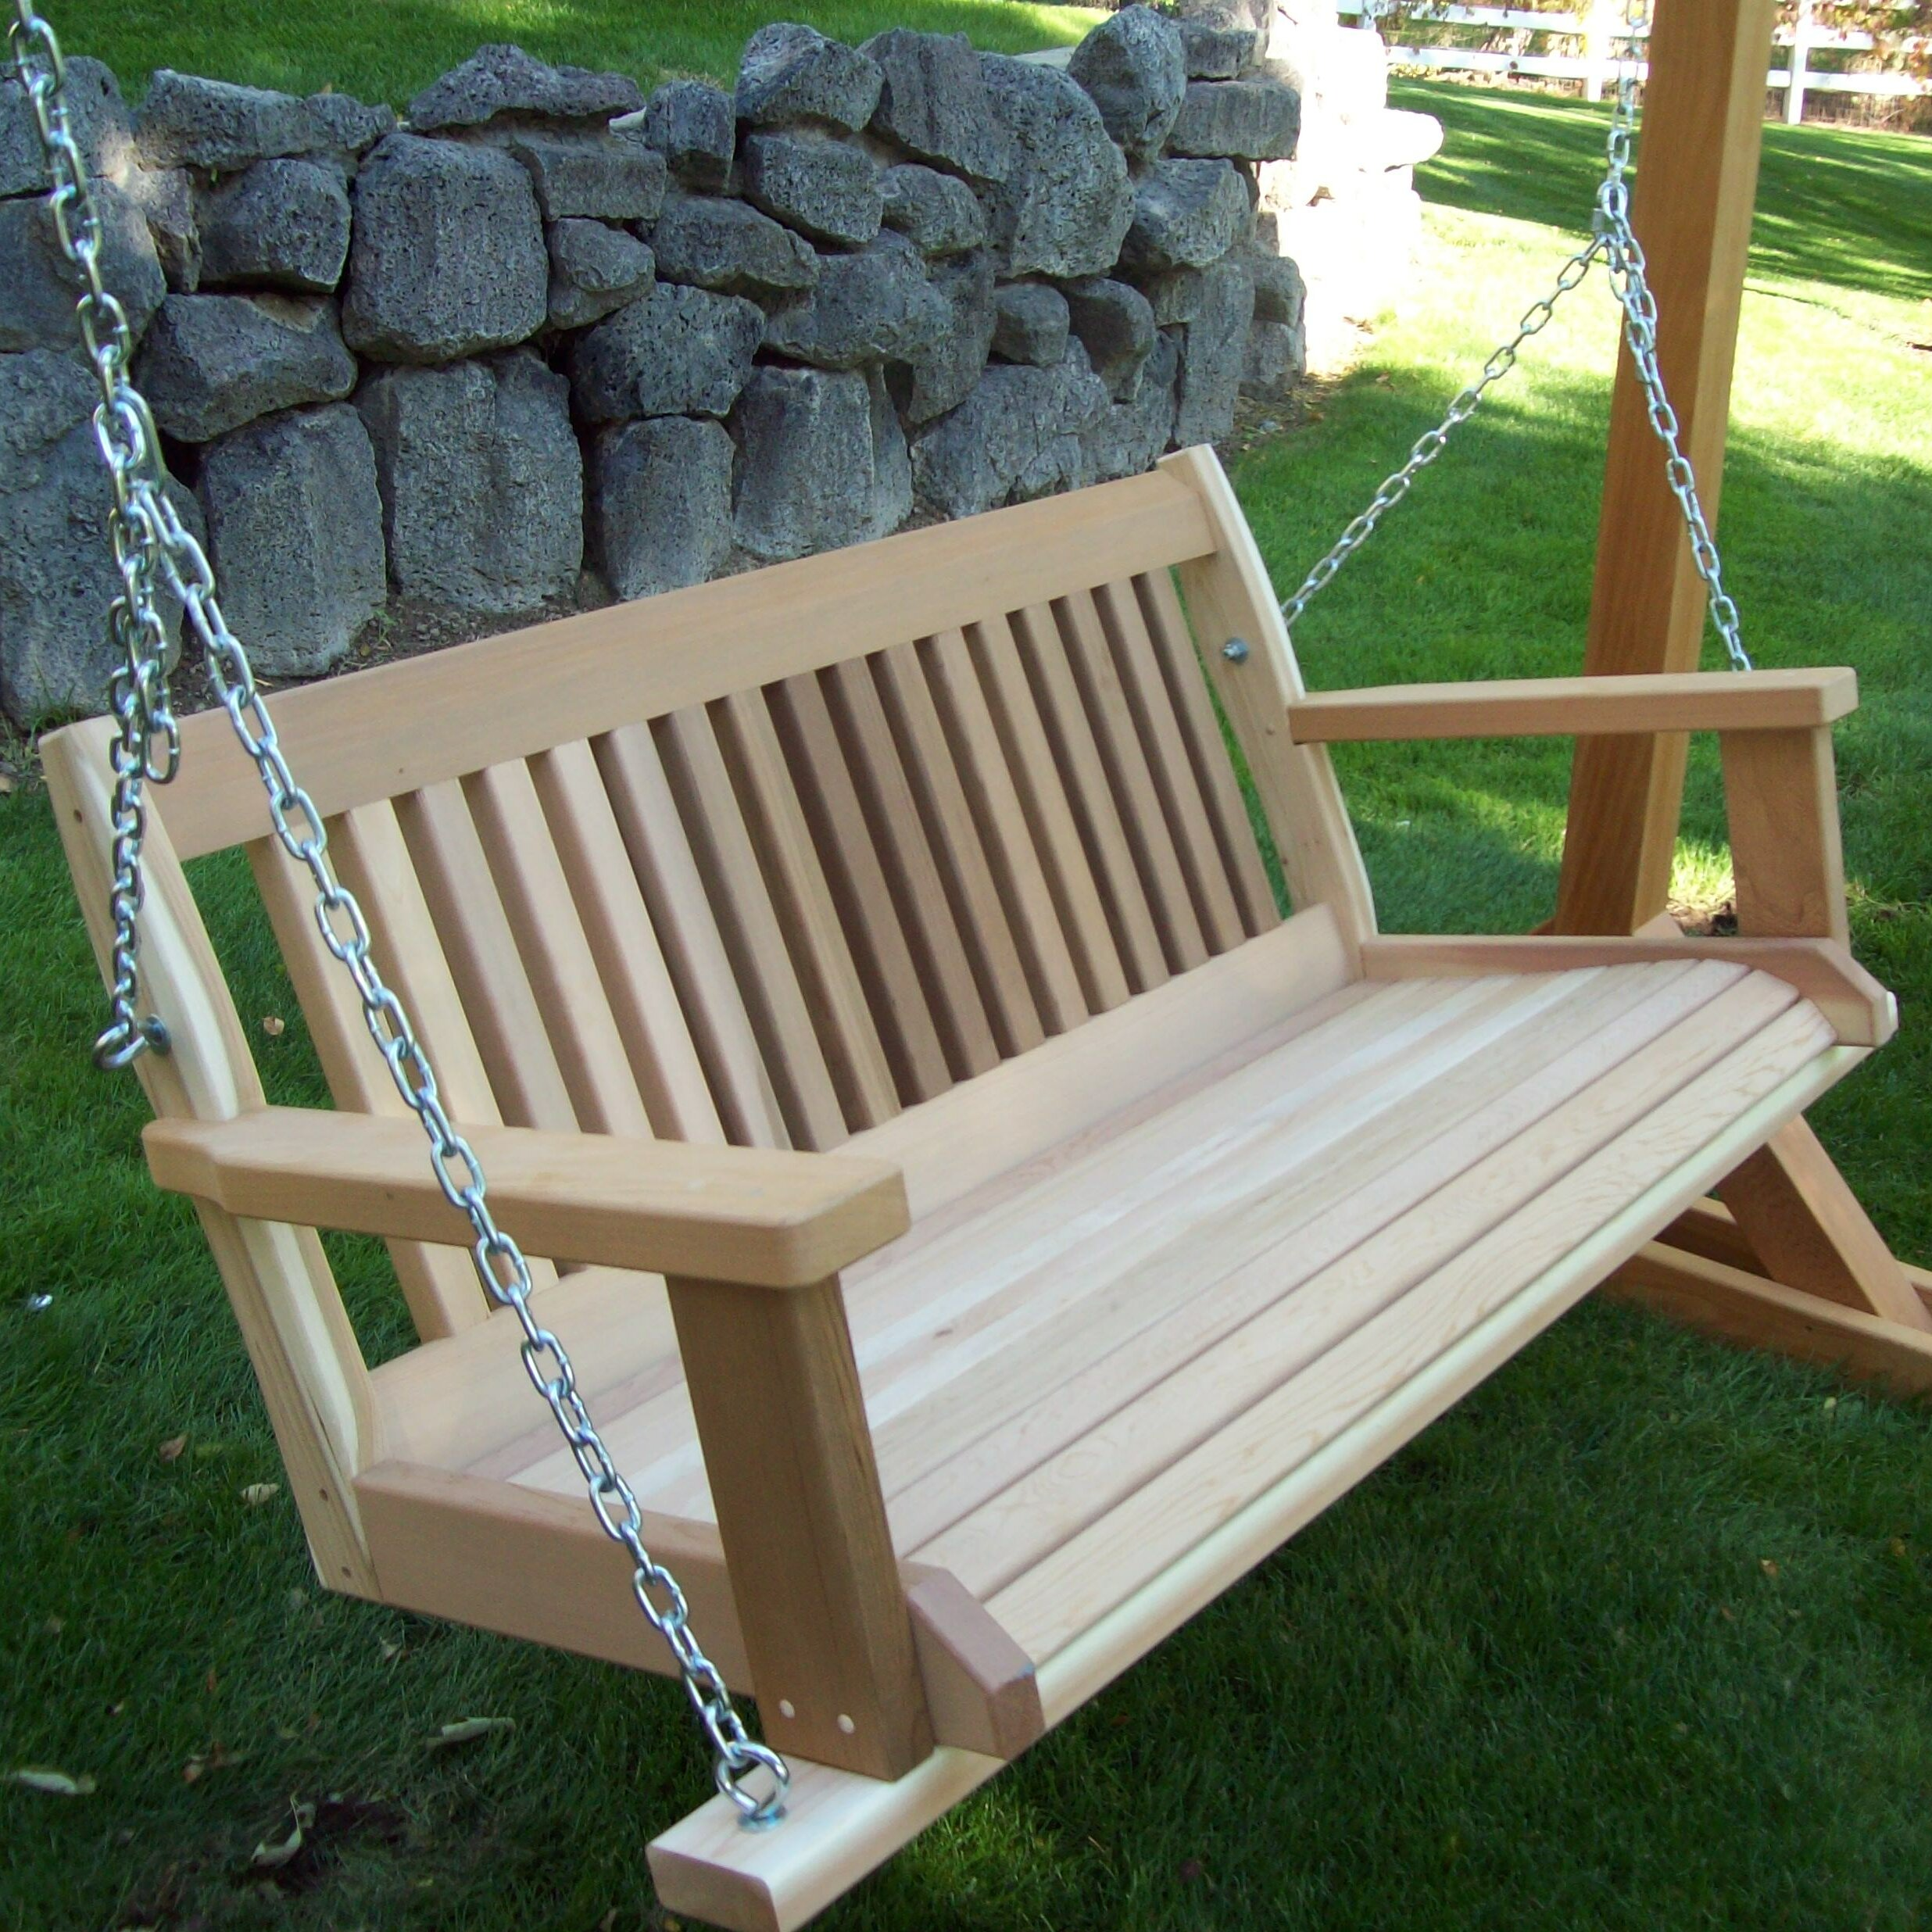 Woodcountry cabbage hill porch swing wayfair for How to build a swing chair